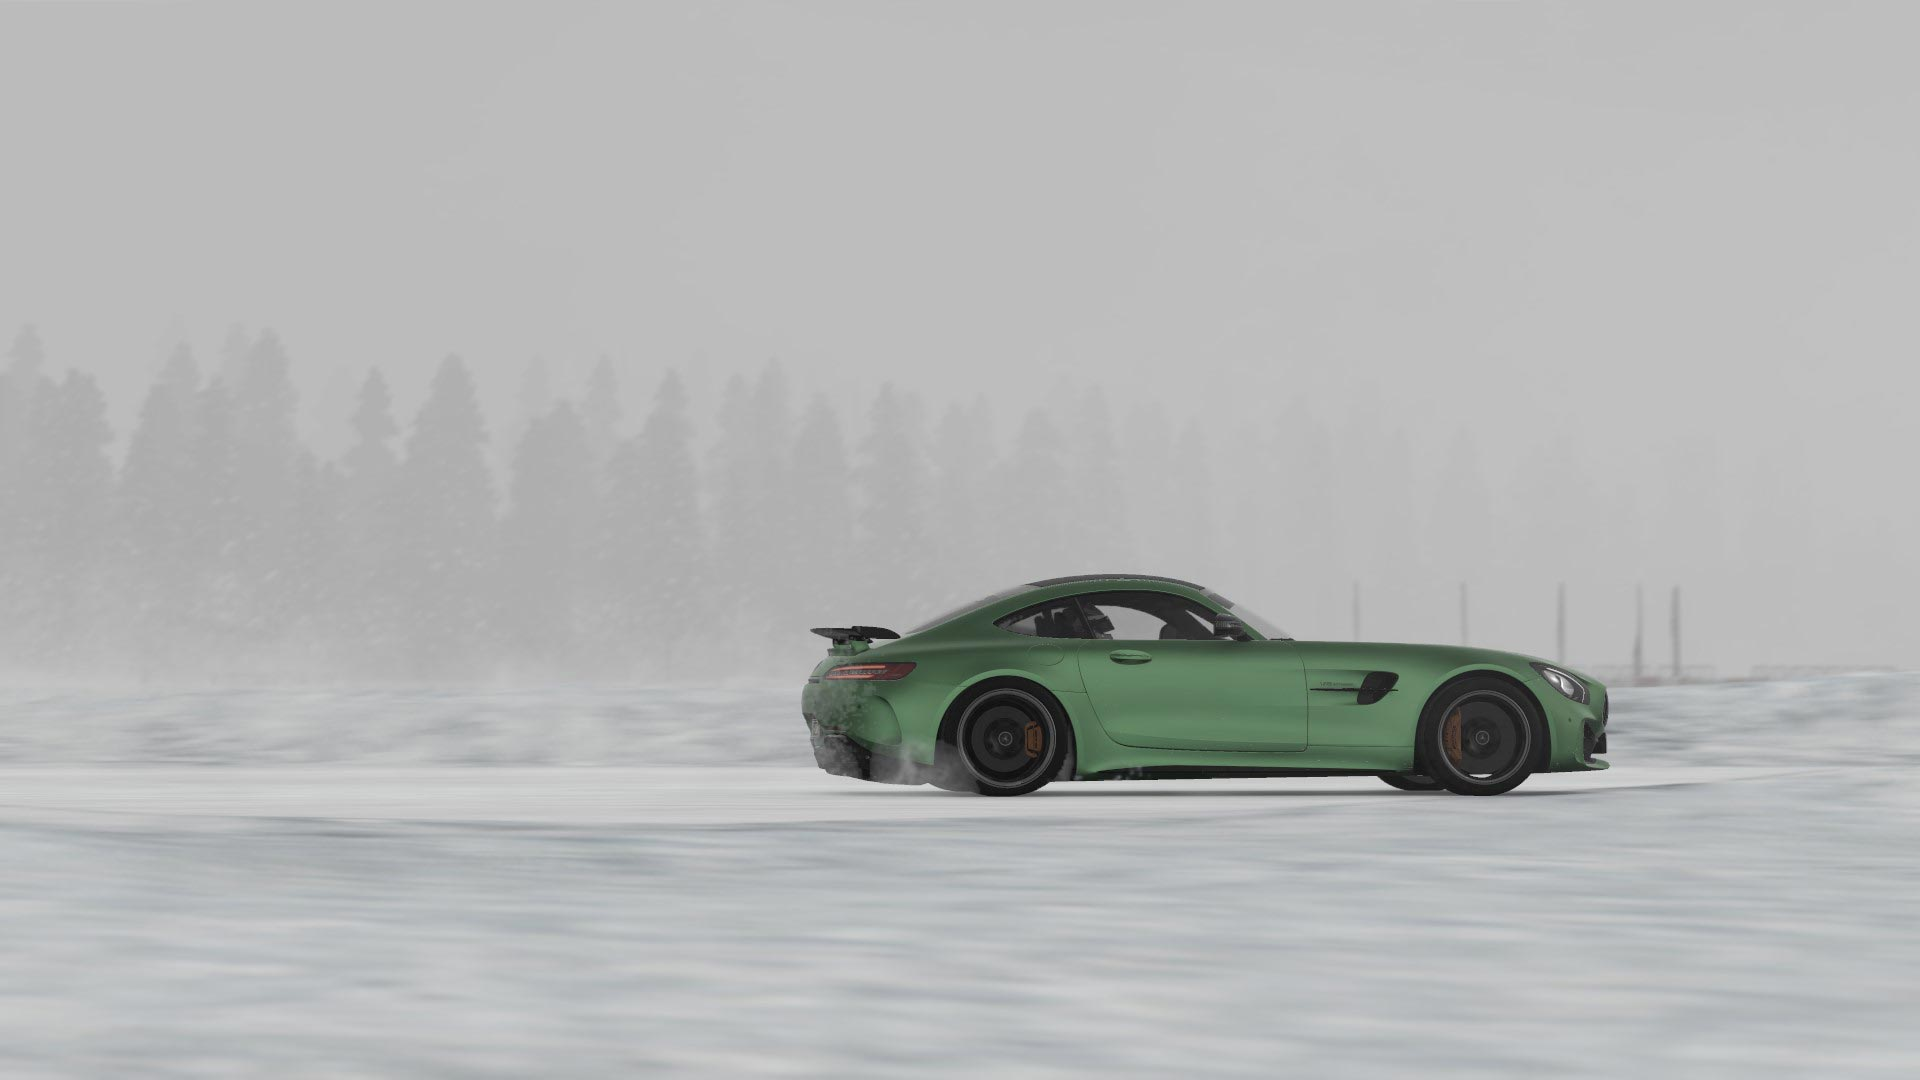 Place 8 out of 10: Project Cars